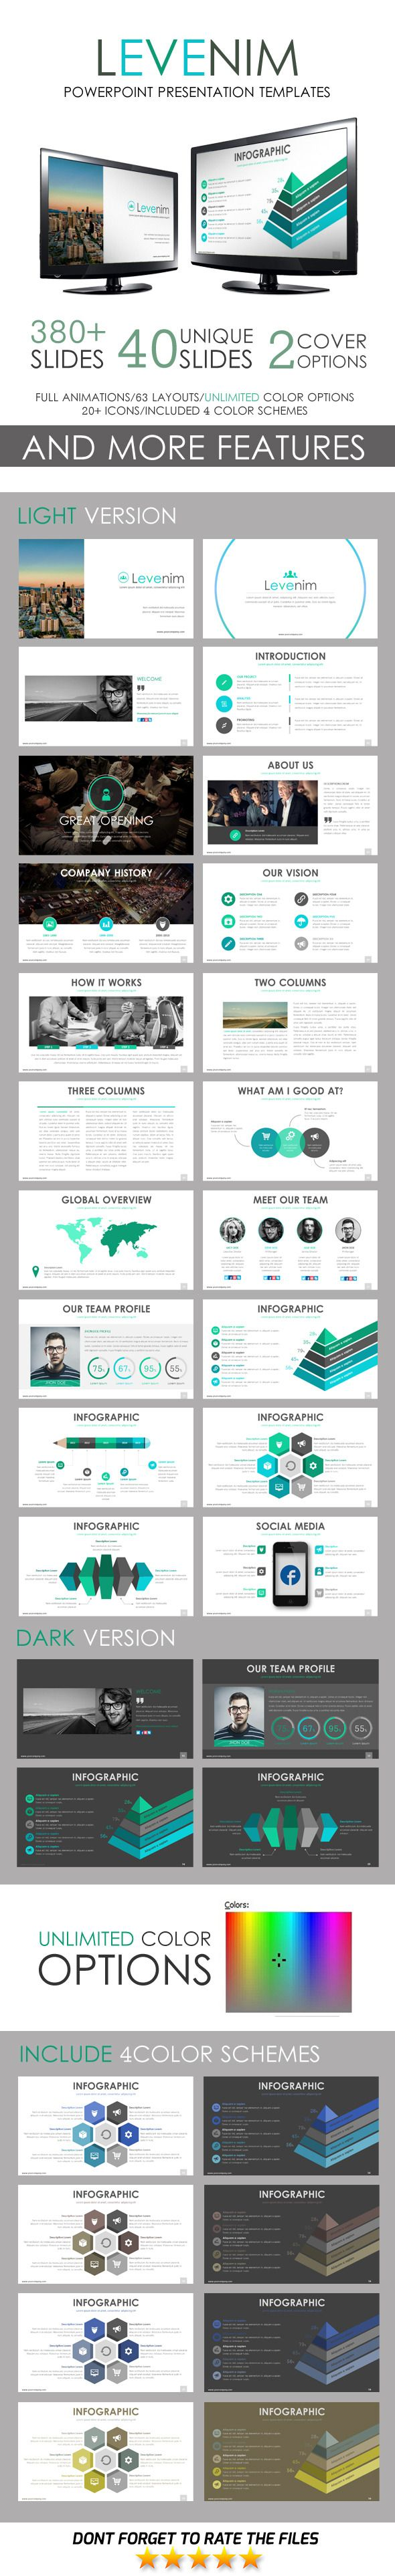 Levenim PowerPoint Template - Business PowerPoint Templates